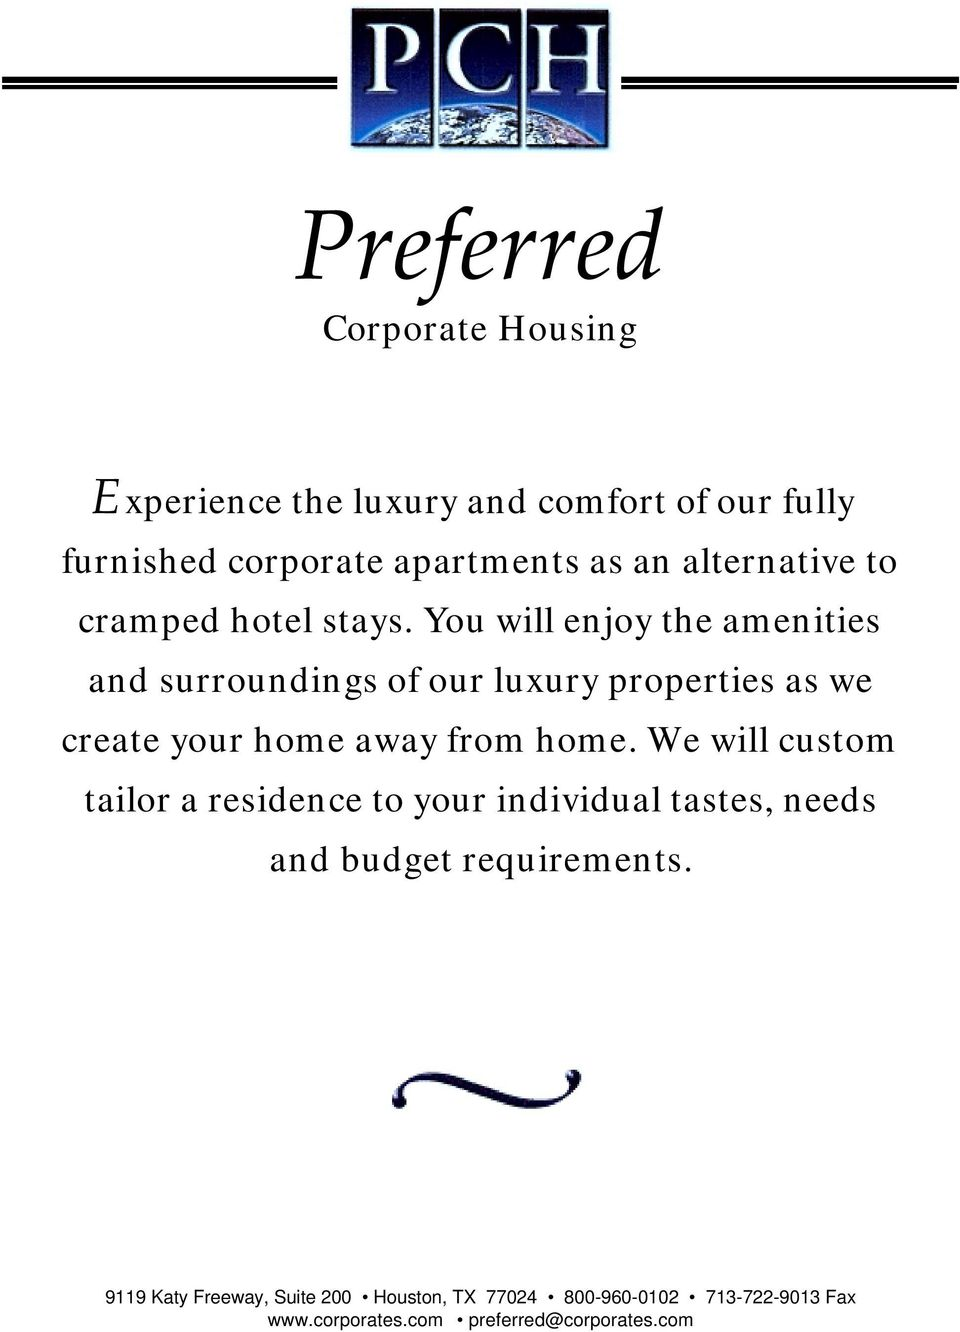 You will enjoy the amenities and surroundings of our luxury properties as we create